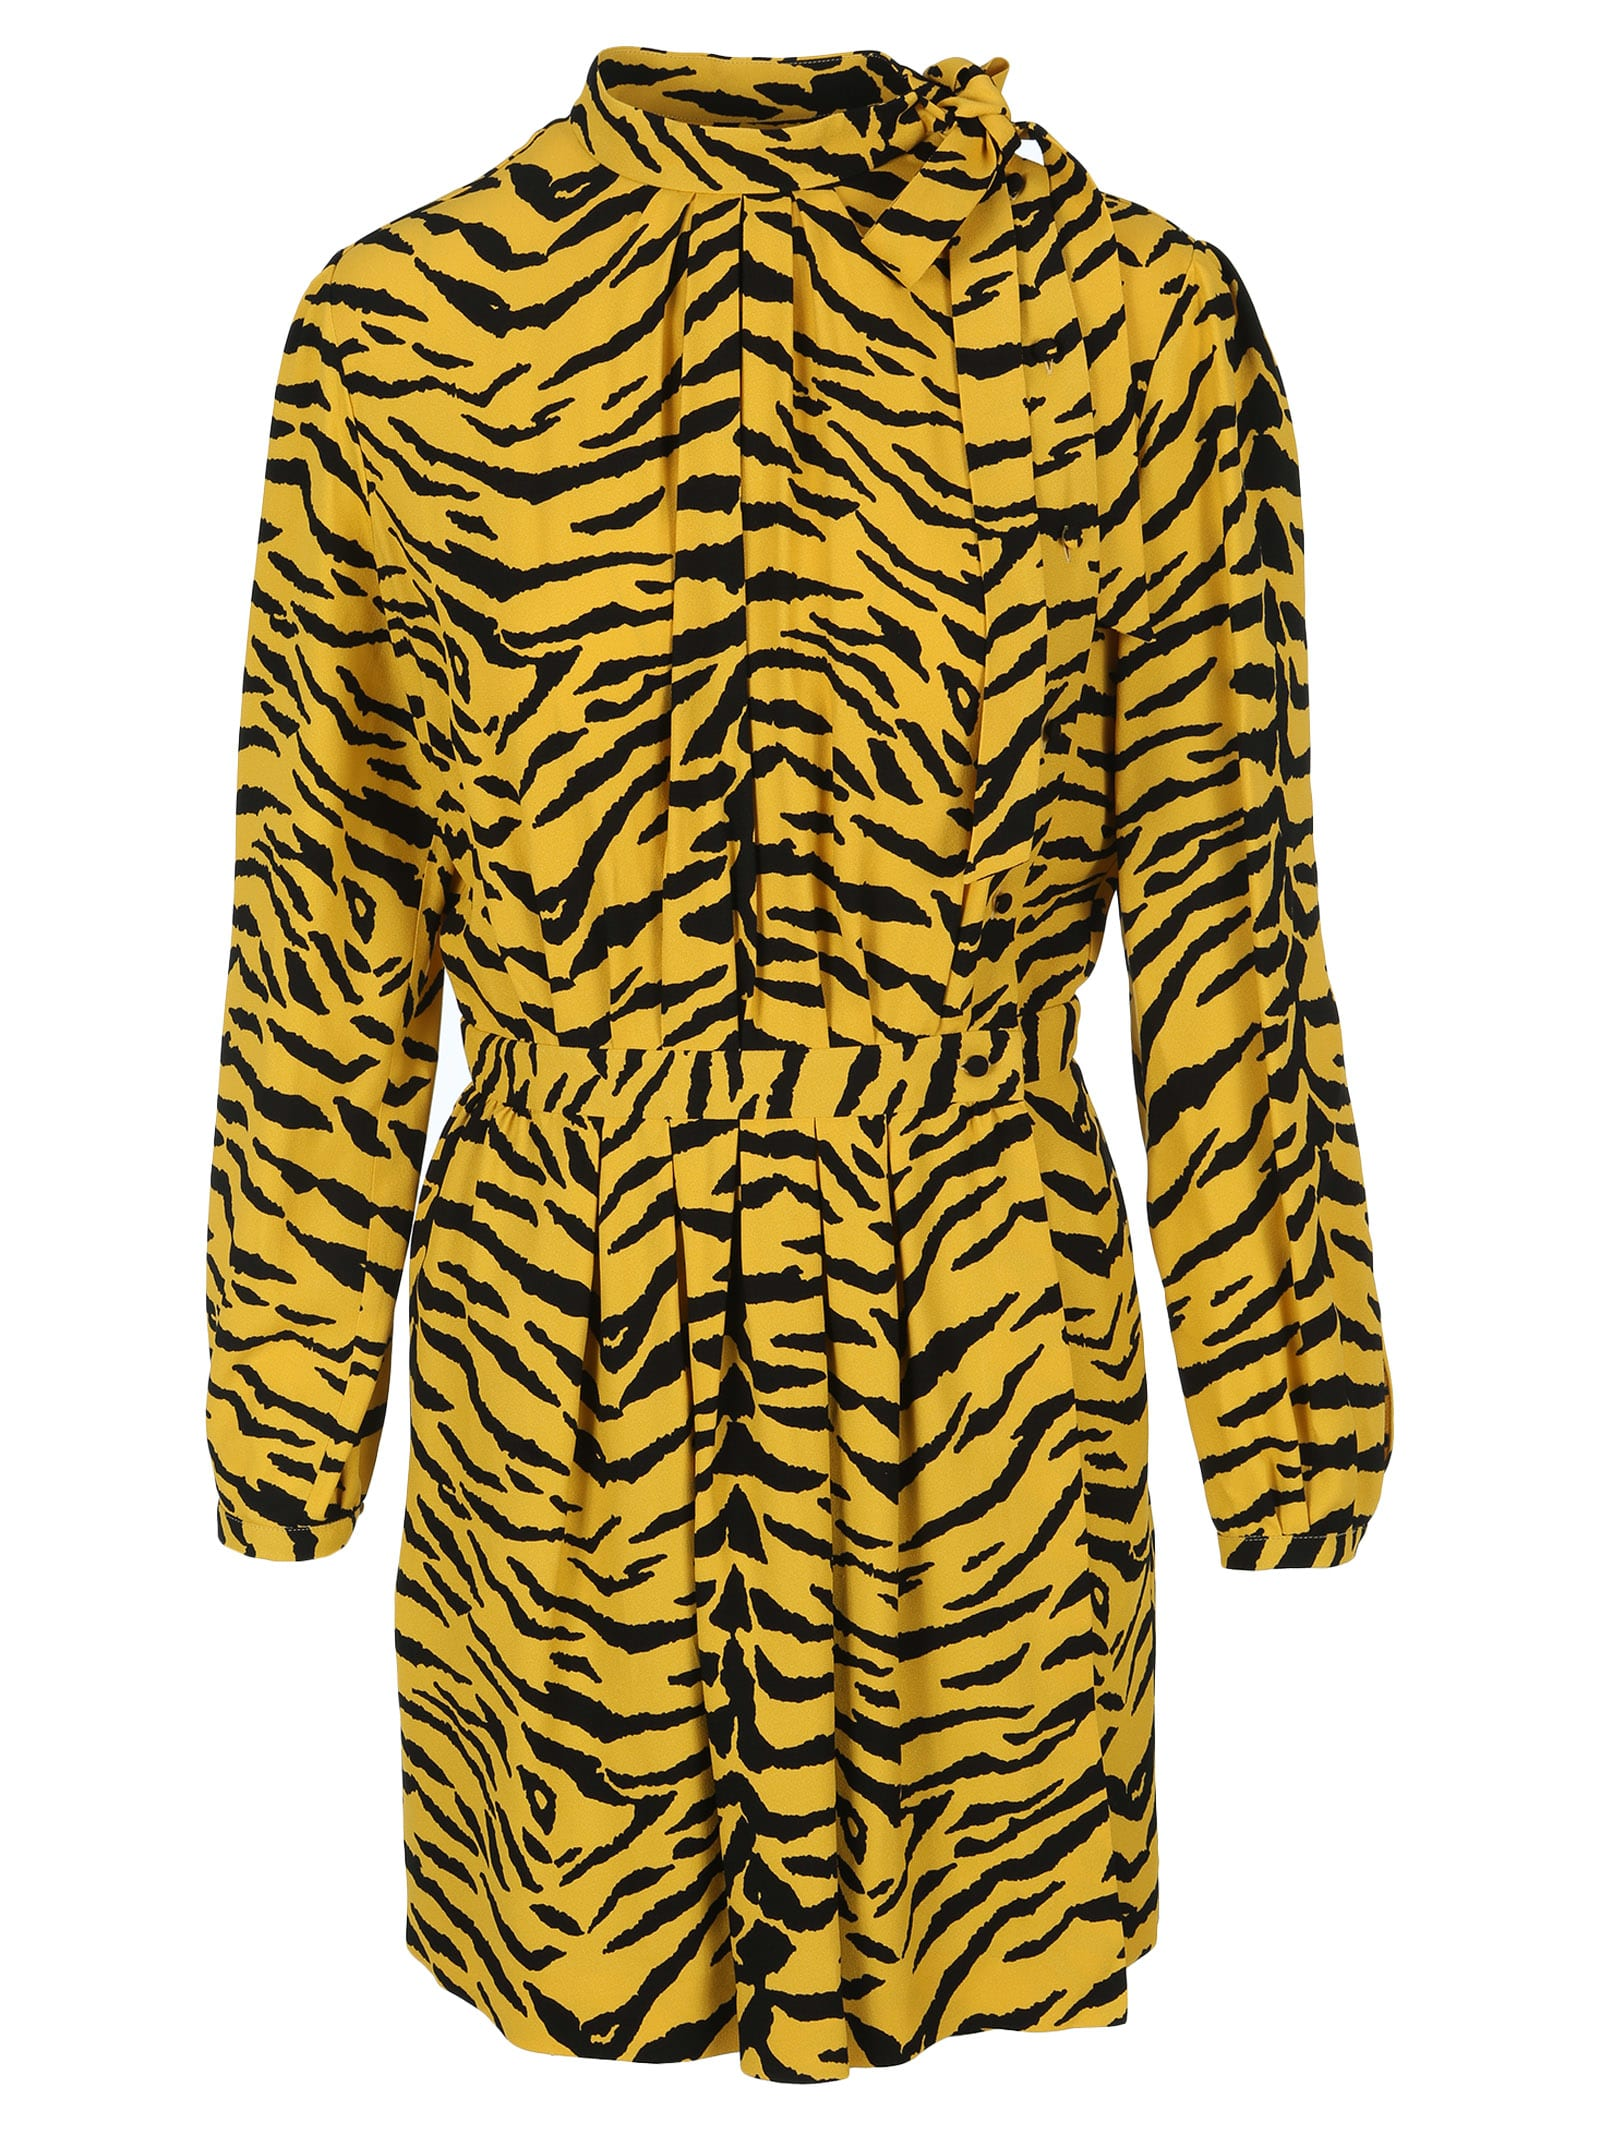 Saint Laurent Zebra Print Wrap Dress